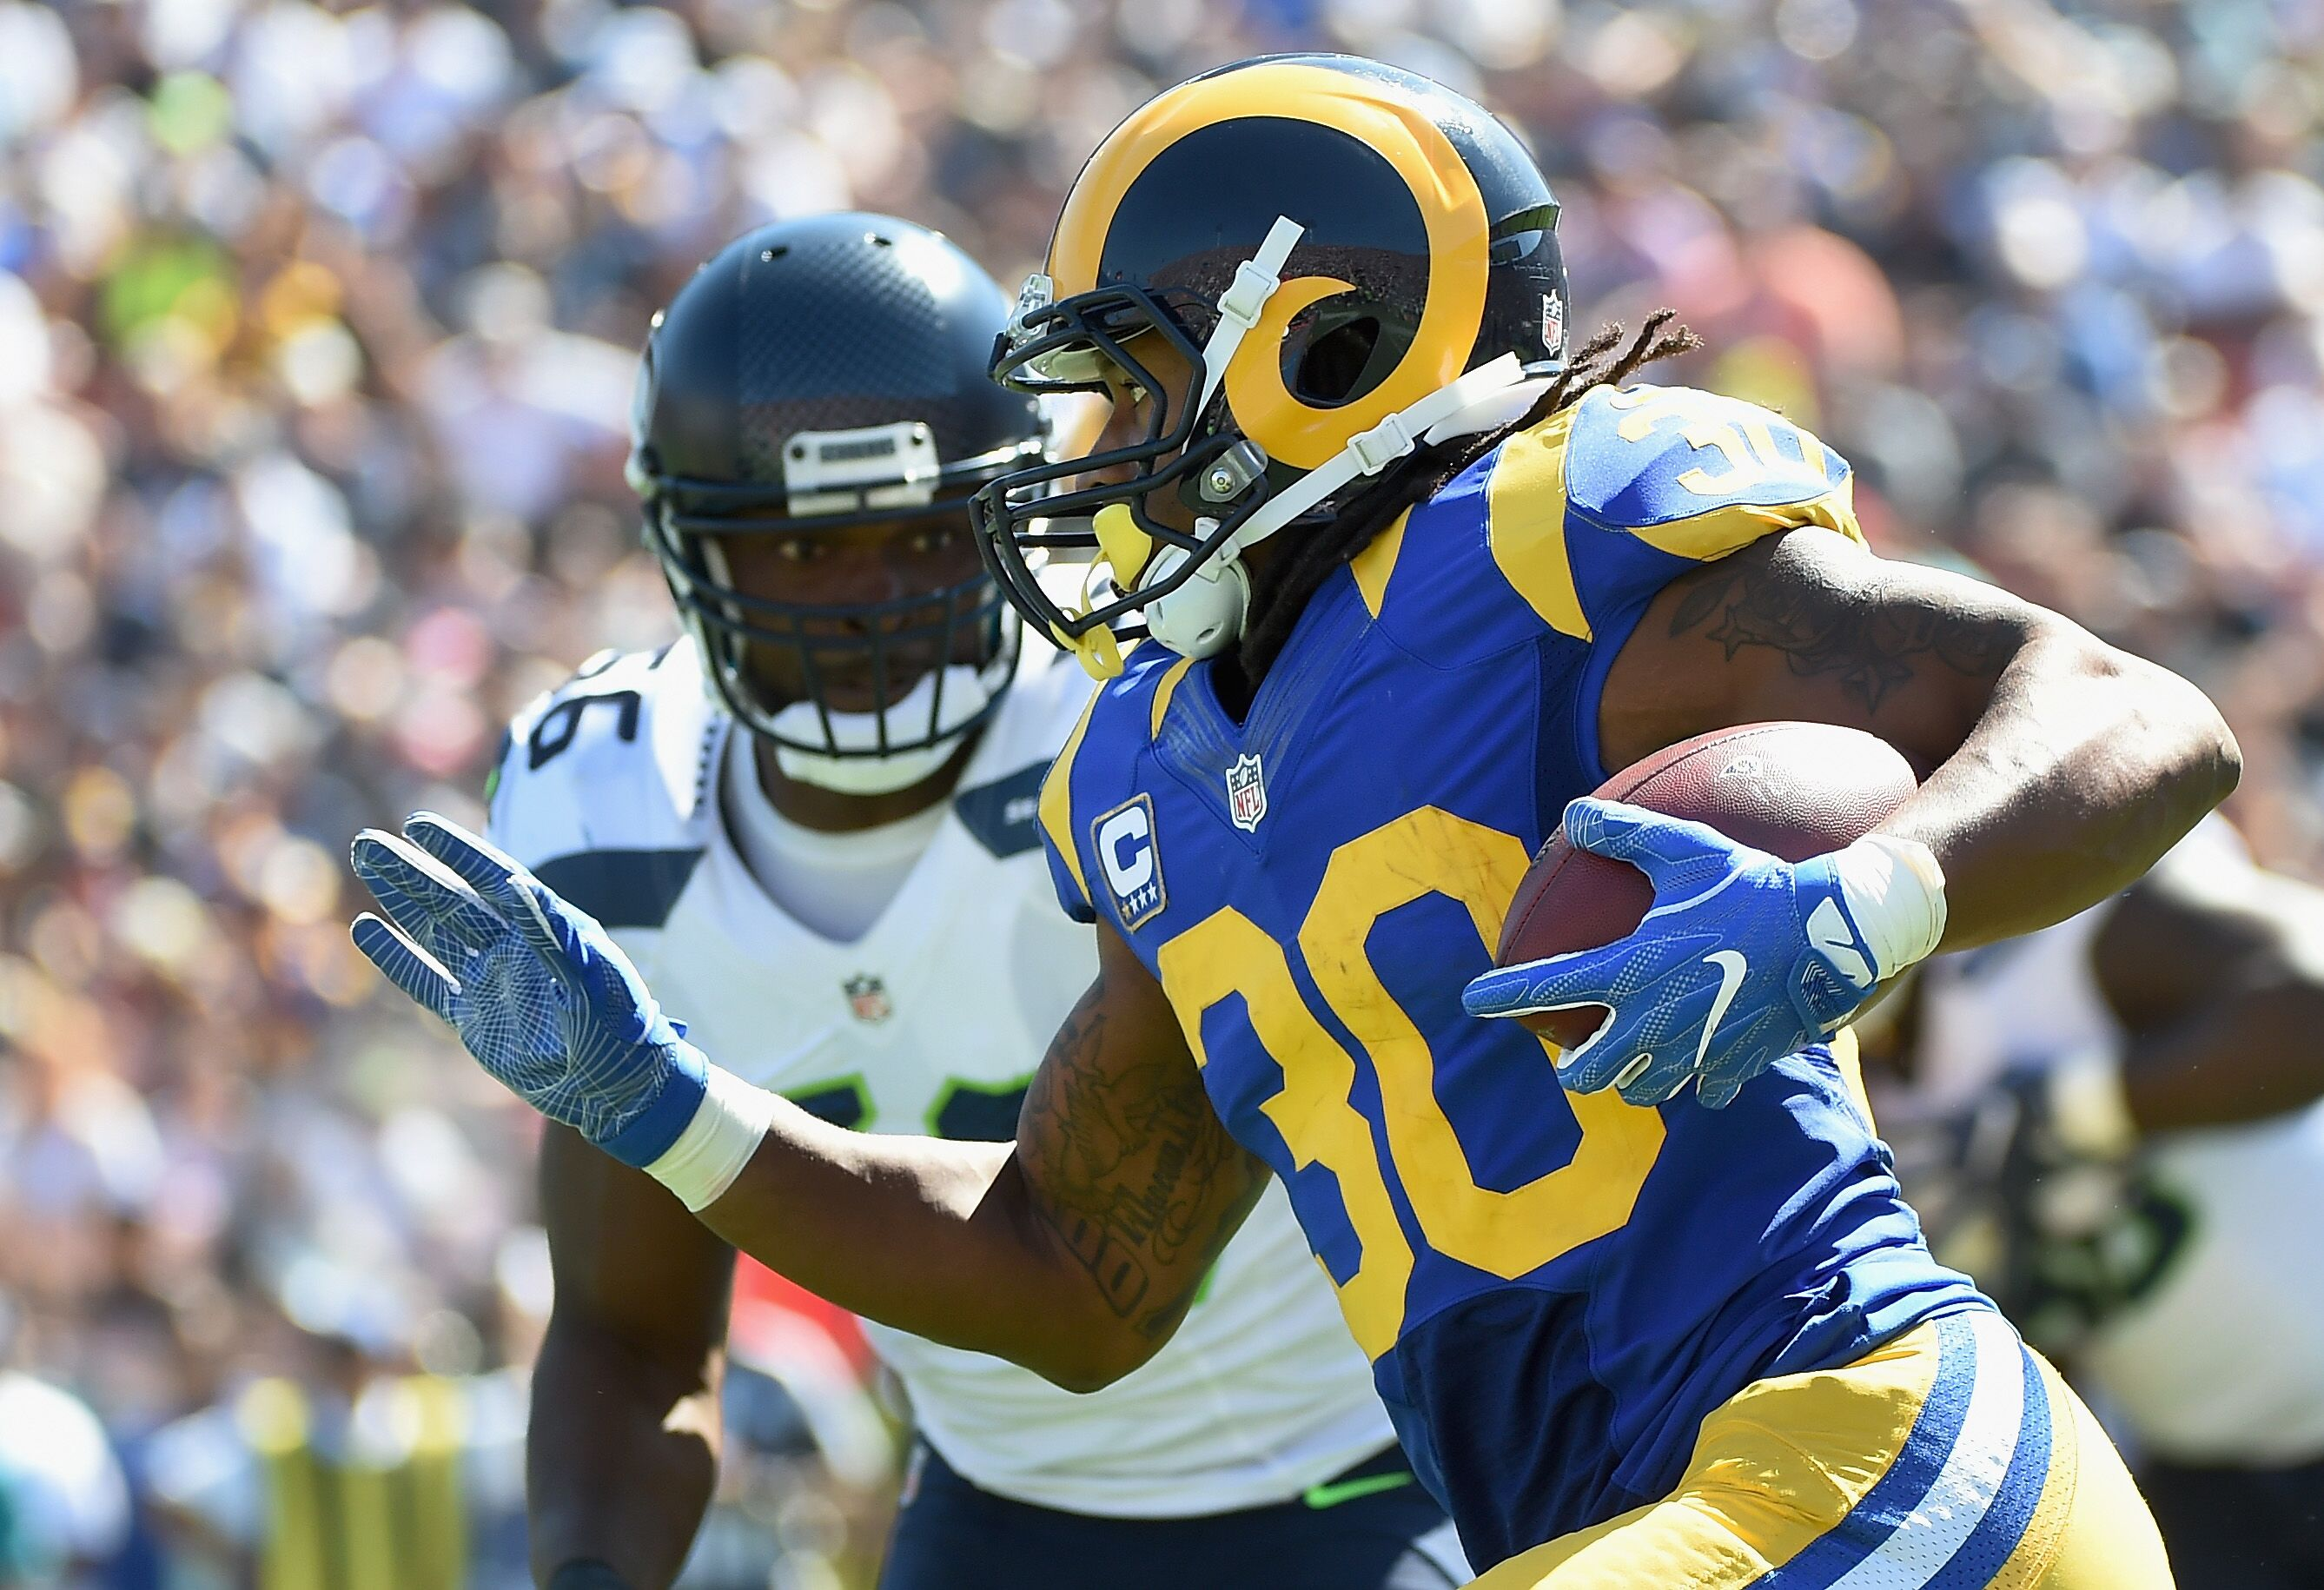 Seahawks vs Rams: Game Pick - NFC West rivals clash